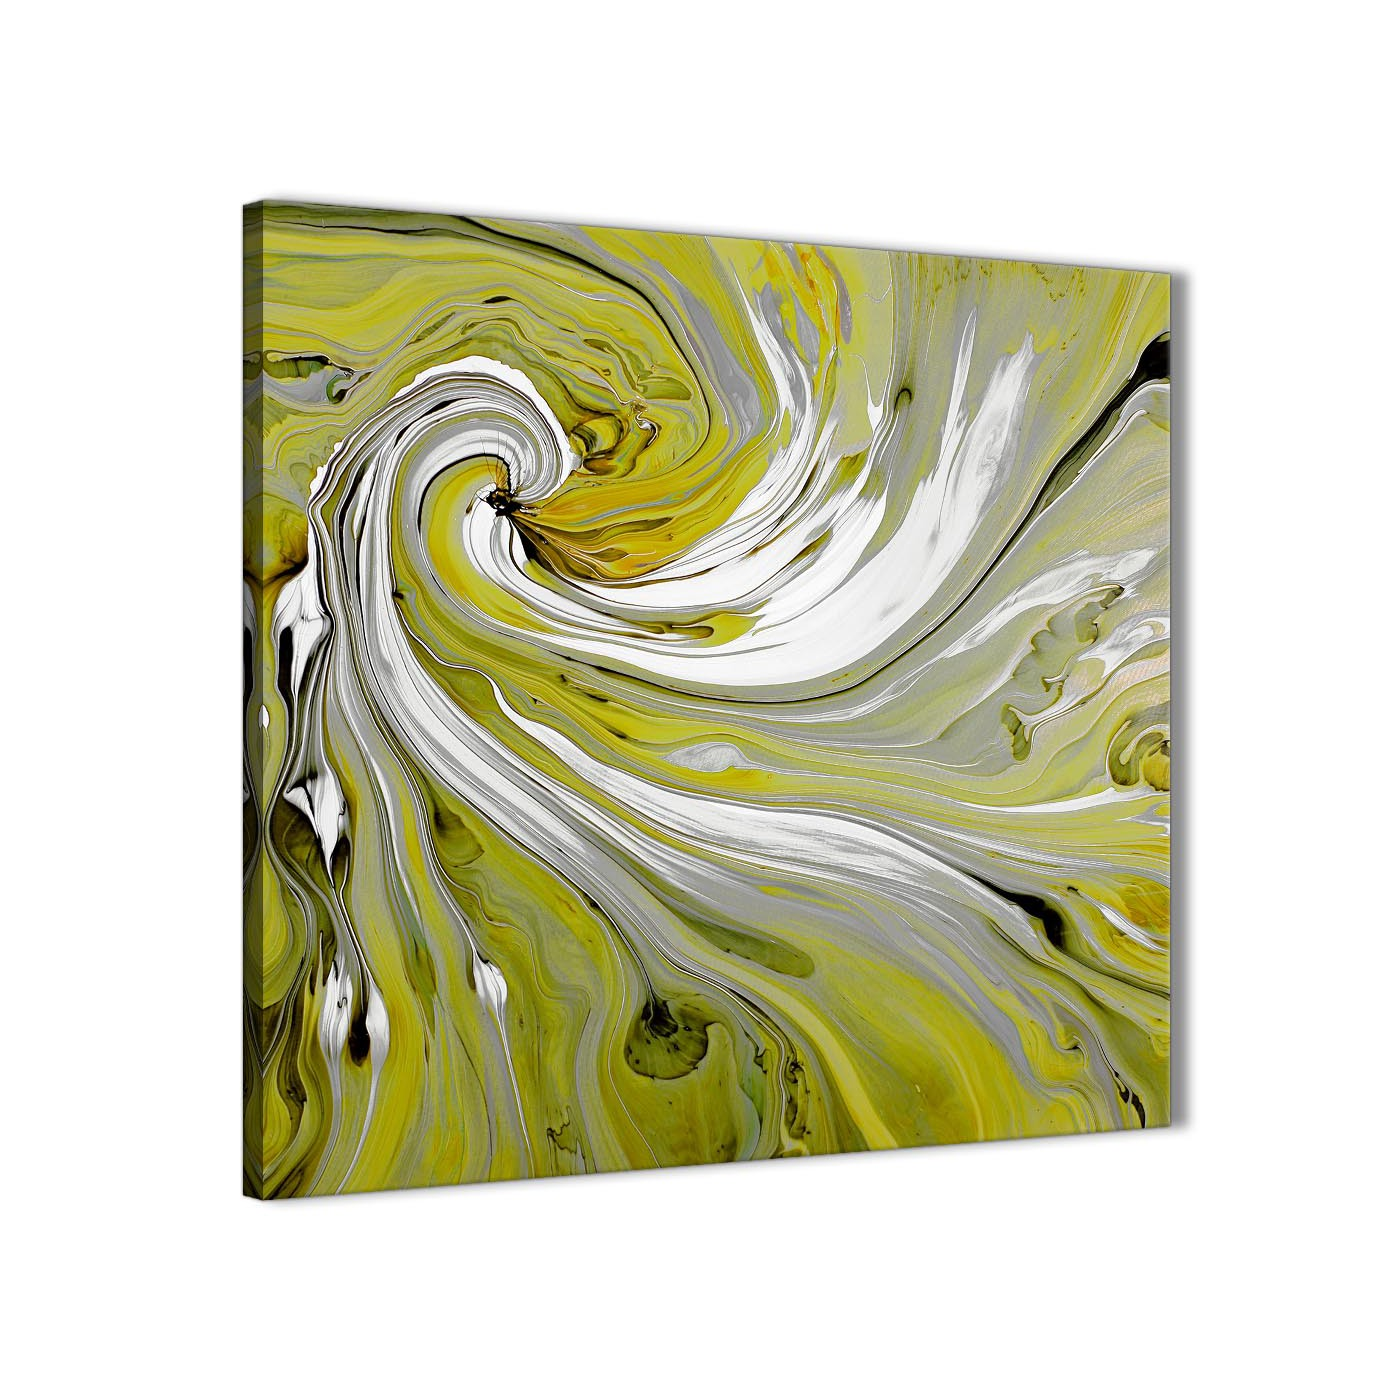 Marvelous Modern Lime Green Swirls Modern Abstract Canvas Wall Art Modern 79cm Square  1S351L For Your Dining Display Gallery Item 1 ...